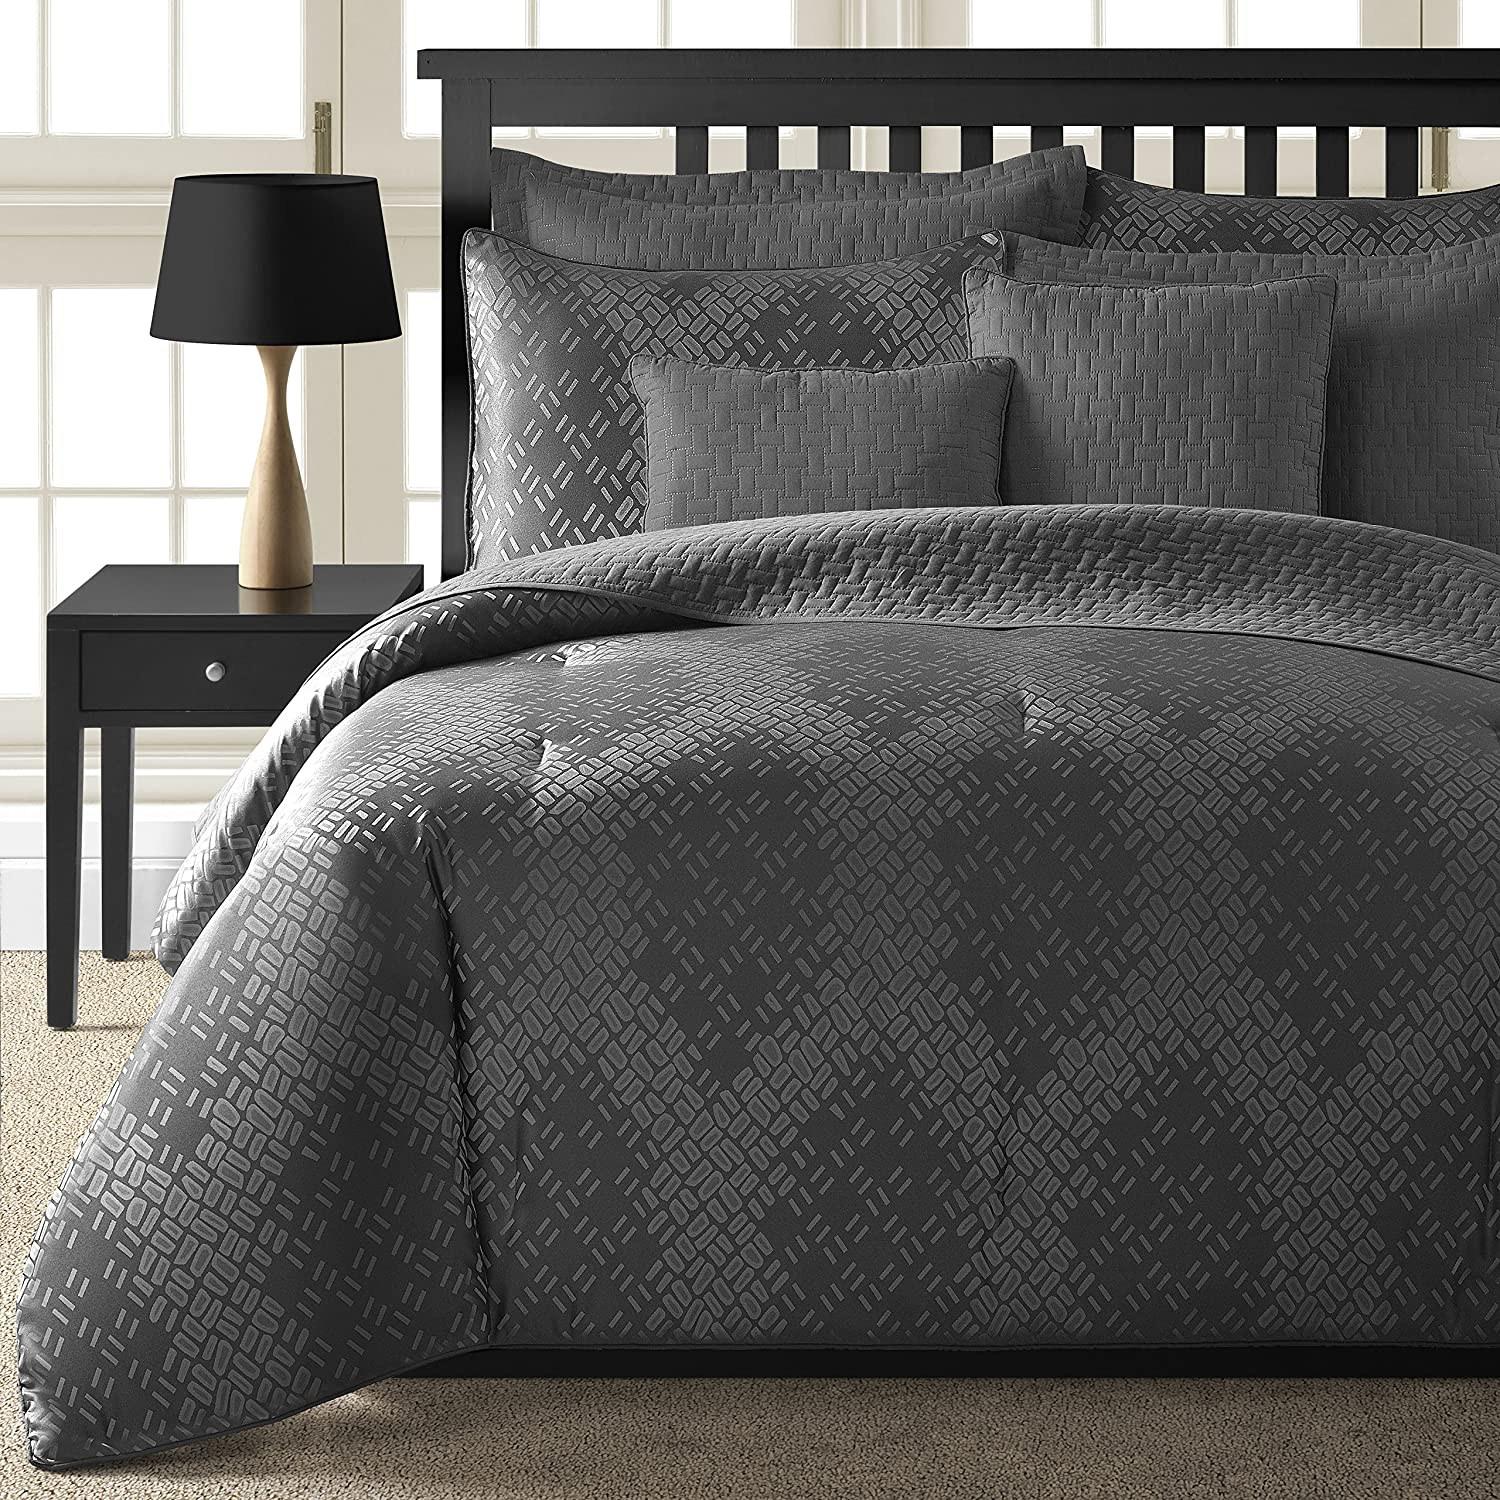 8-piece Comforter and Coverlet Set